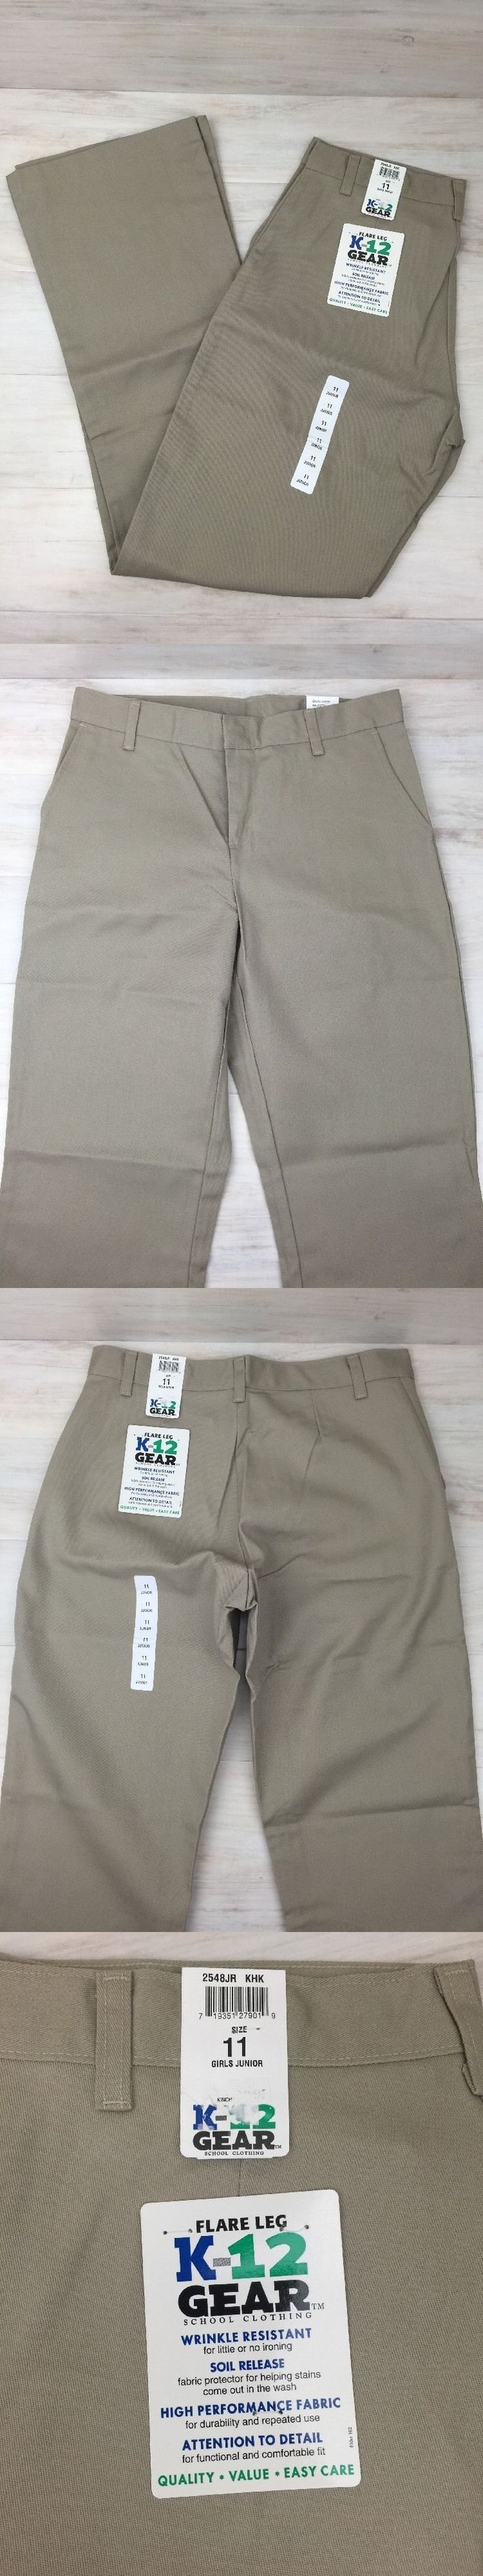 Uniforms 175652: School Uniform Pants Girls Junior Size 11 Khaki Flare Leg Lot Of 3 2548Jr Nwt -> BUY IT NOW ONLY: $41.99 on eBay!